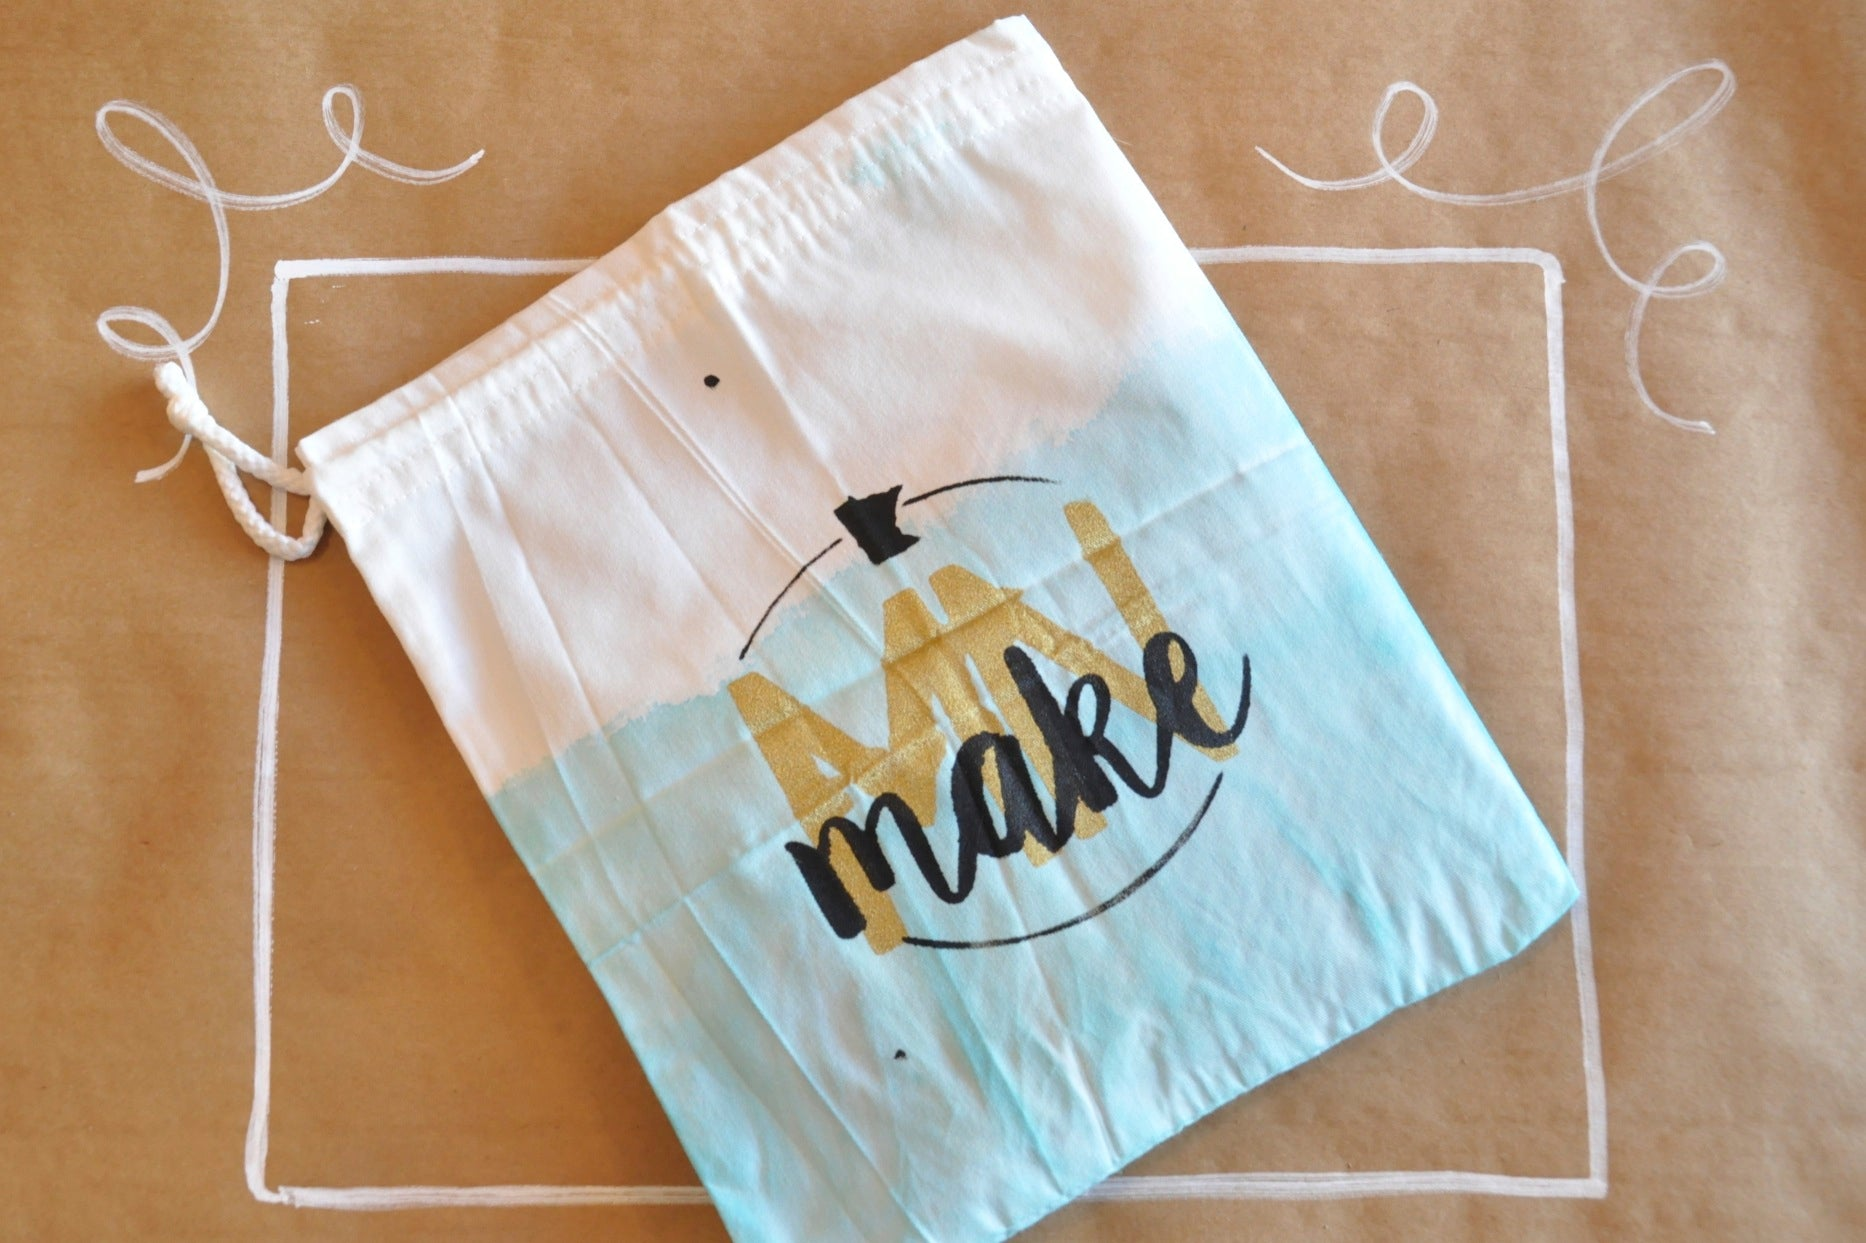 MakeMN at Carver Junk Company | Handmade, Pinterest-inspired DIY Project Workshops in Minneapolis, MN